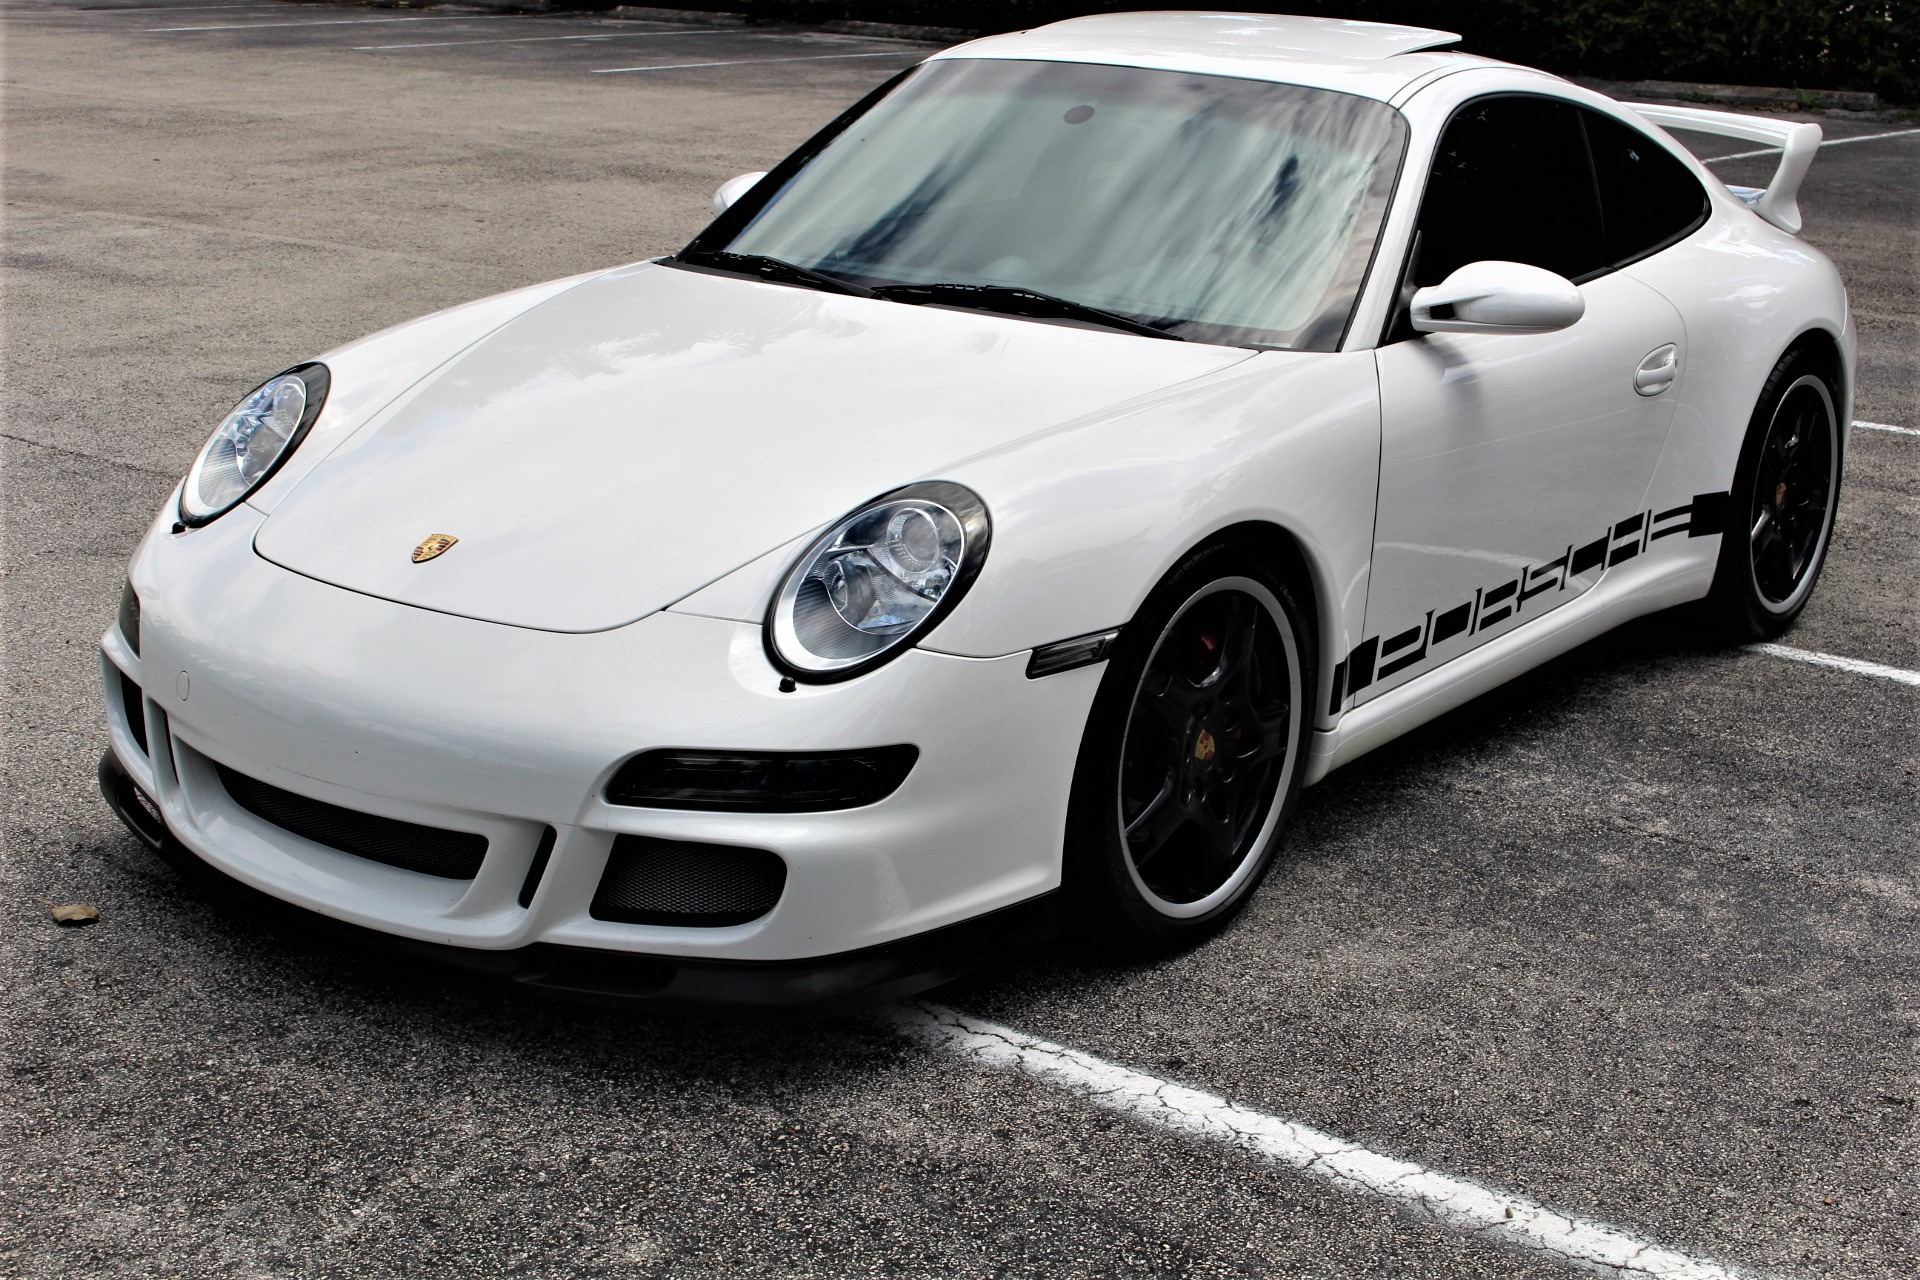 Used 2008 Porsche 911 Carrera S for sale $69,850 at The Gables Sports Cars in Miami FL 33146 2